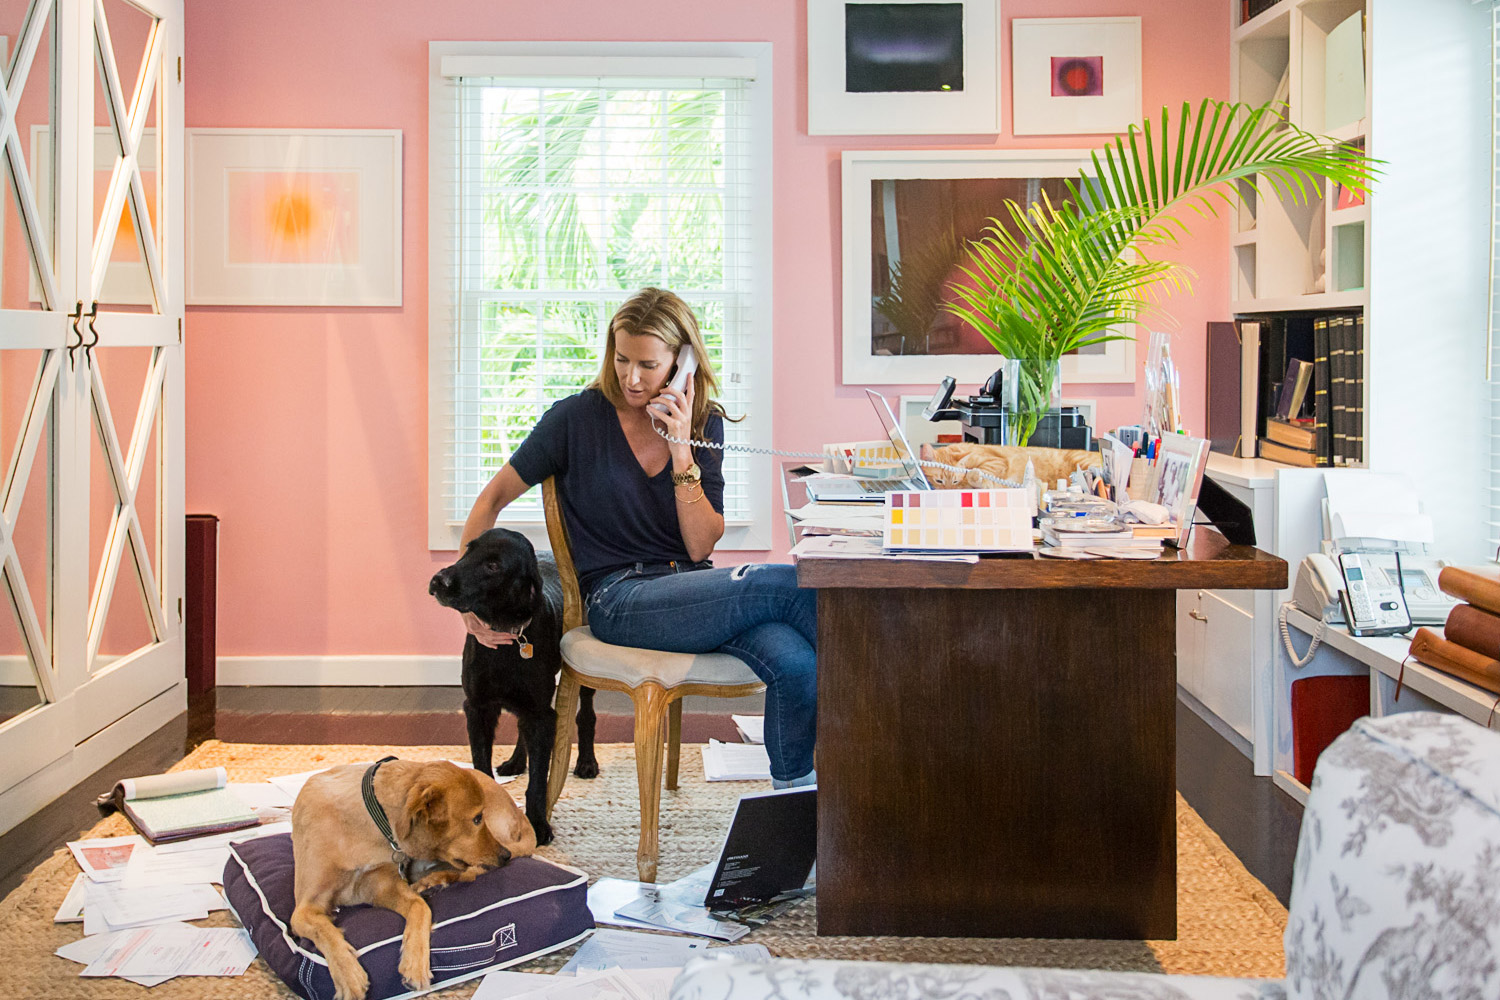 India Hicks On Family, Failure & Life in the Bahamas – Episode 5 of The Grace Tales Podcast